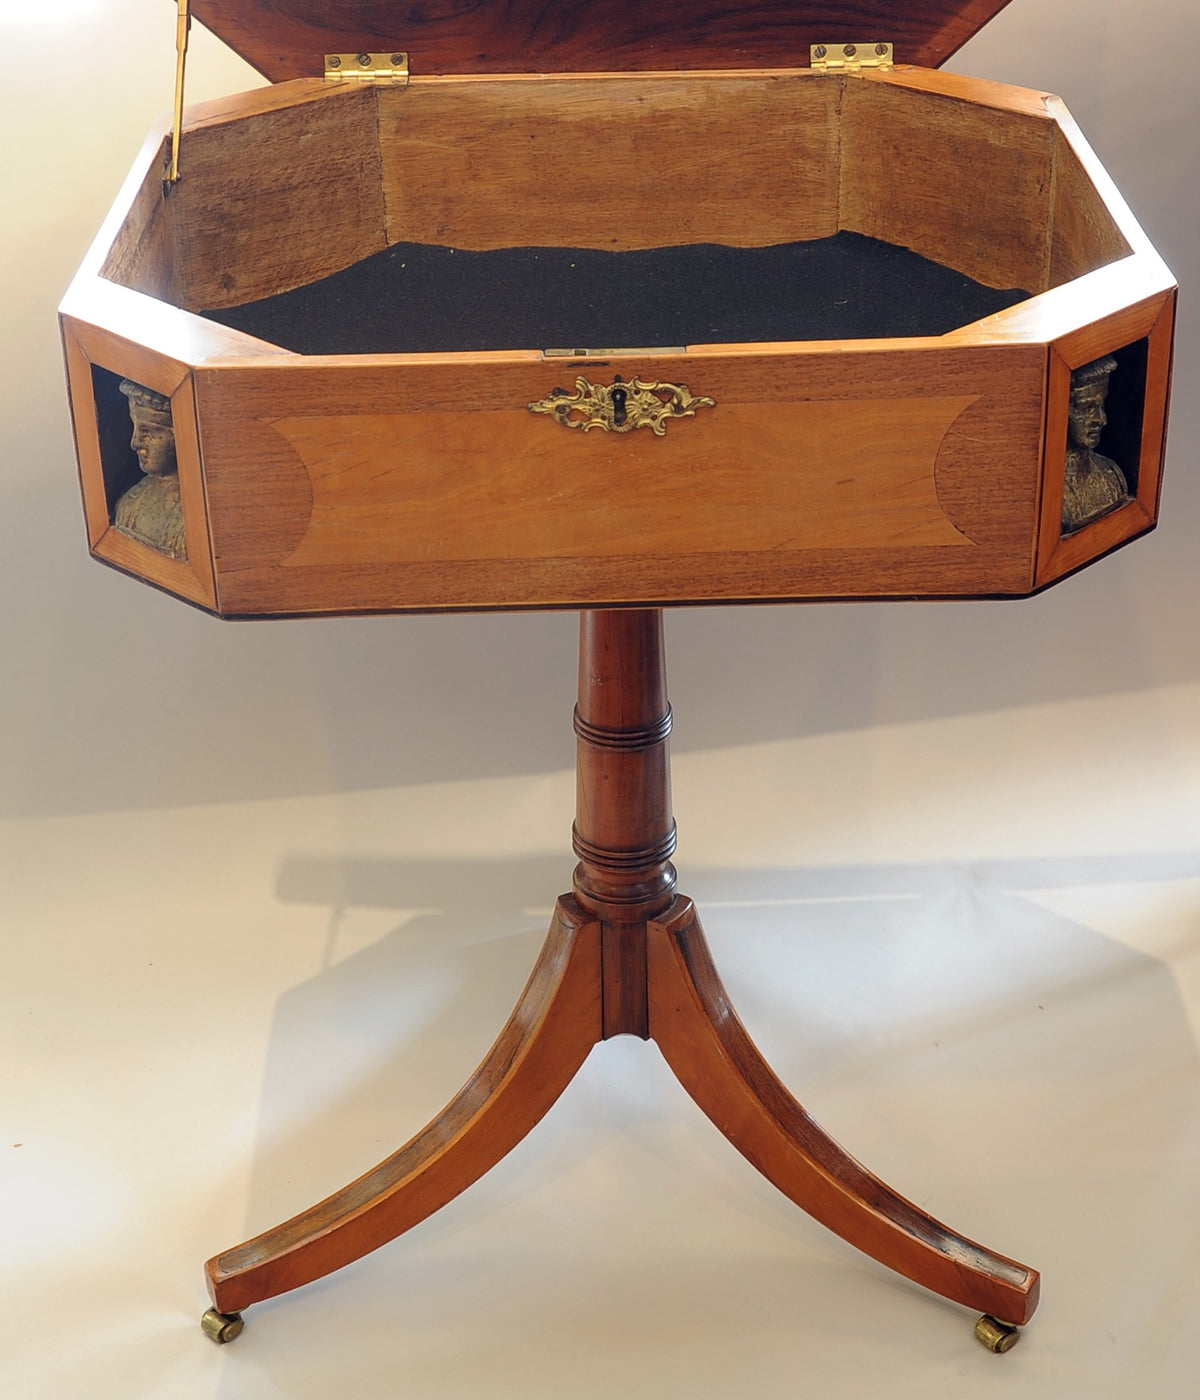 Hinged Top Game Table. English, Late 19th/Early 20th C.